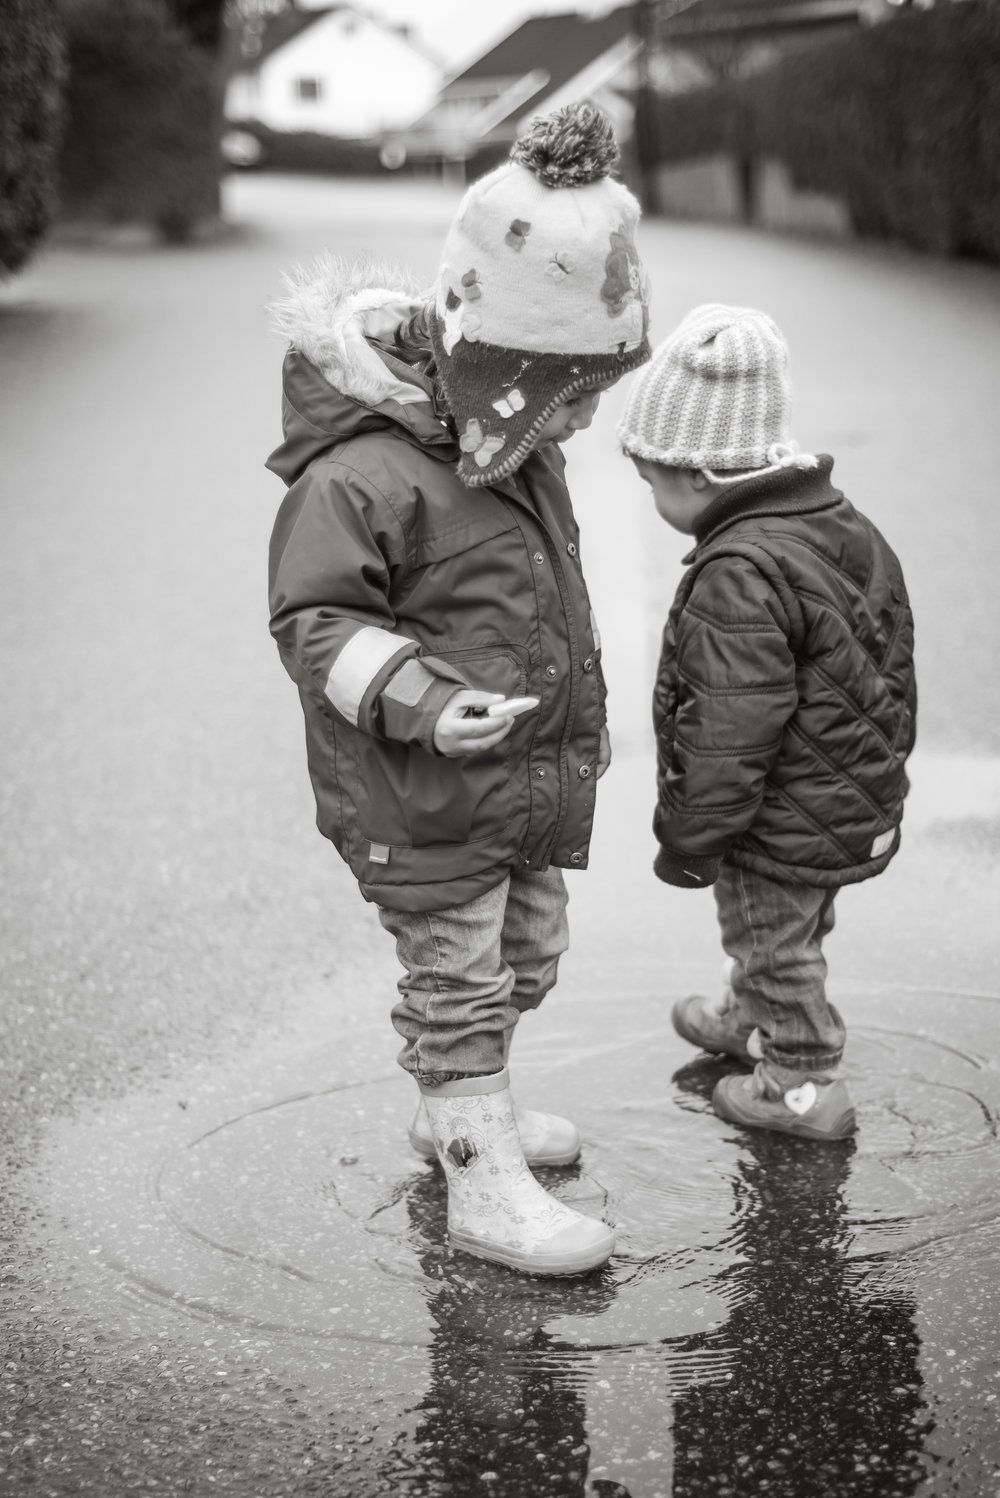 Sisters playing in a puddle BW family photography outdoor Stavanger Familie fotografering